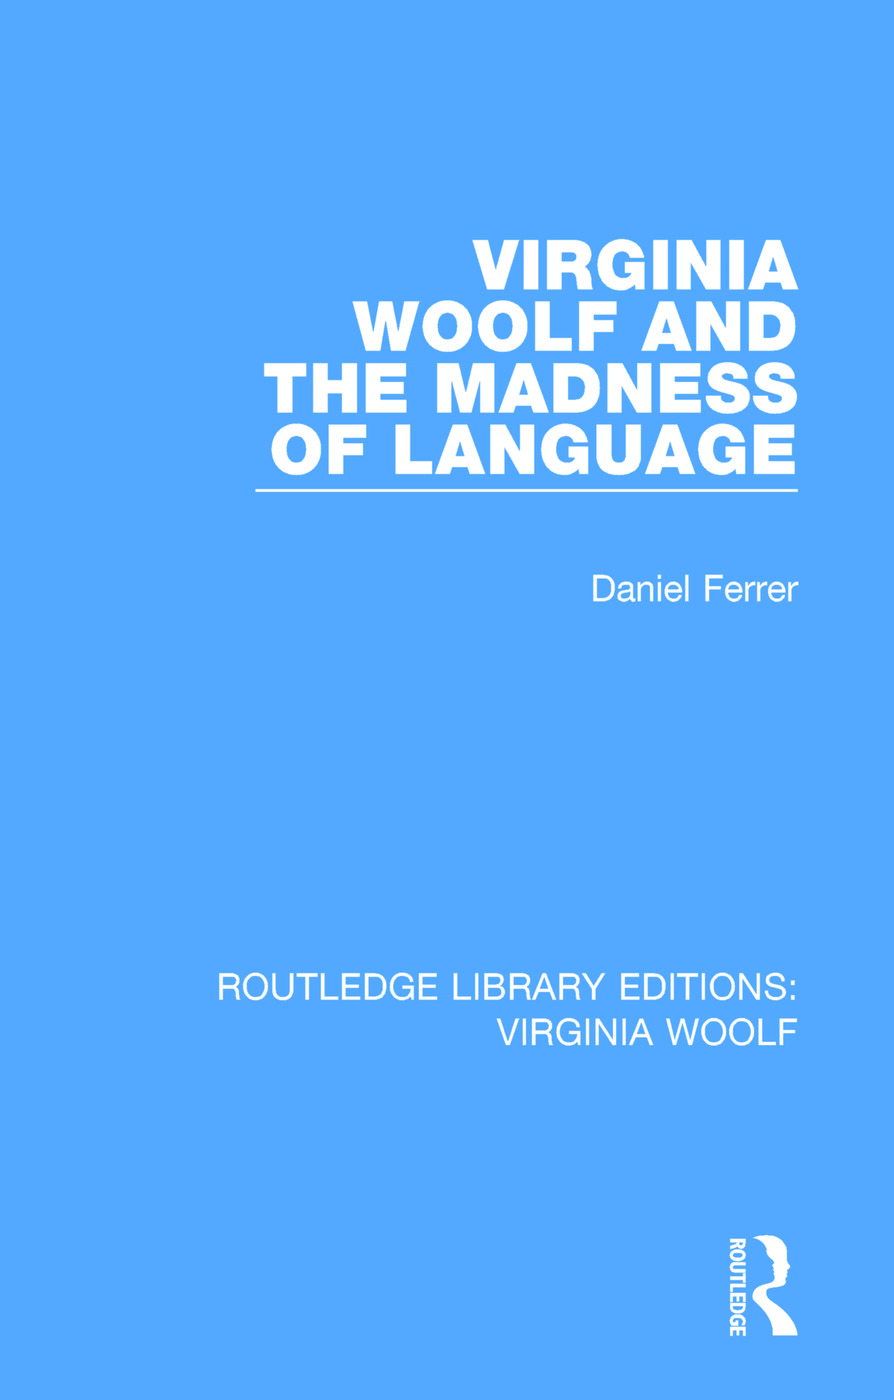 Virginia Woolf and the Madness of Language book cover